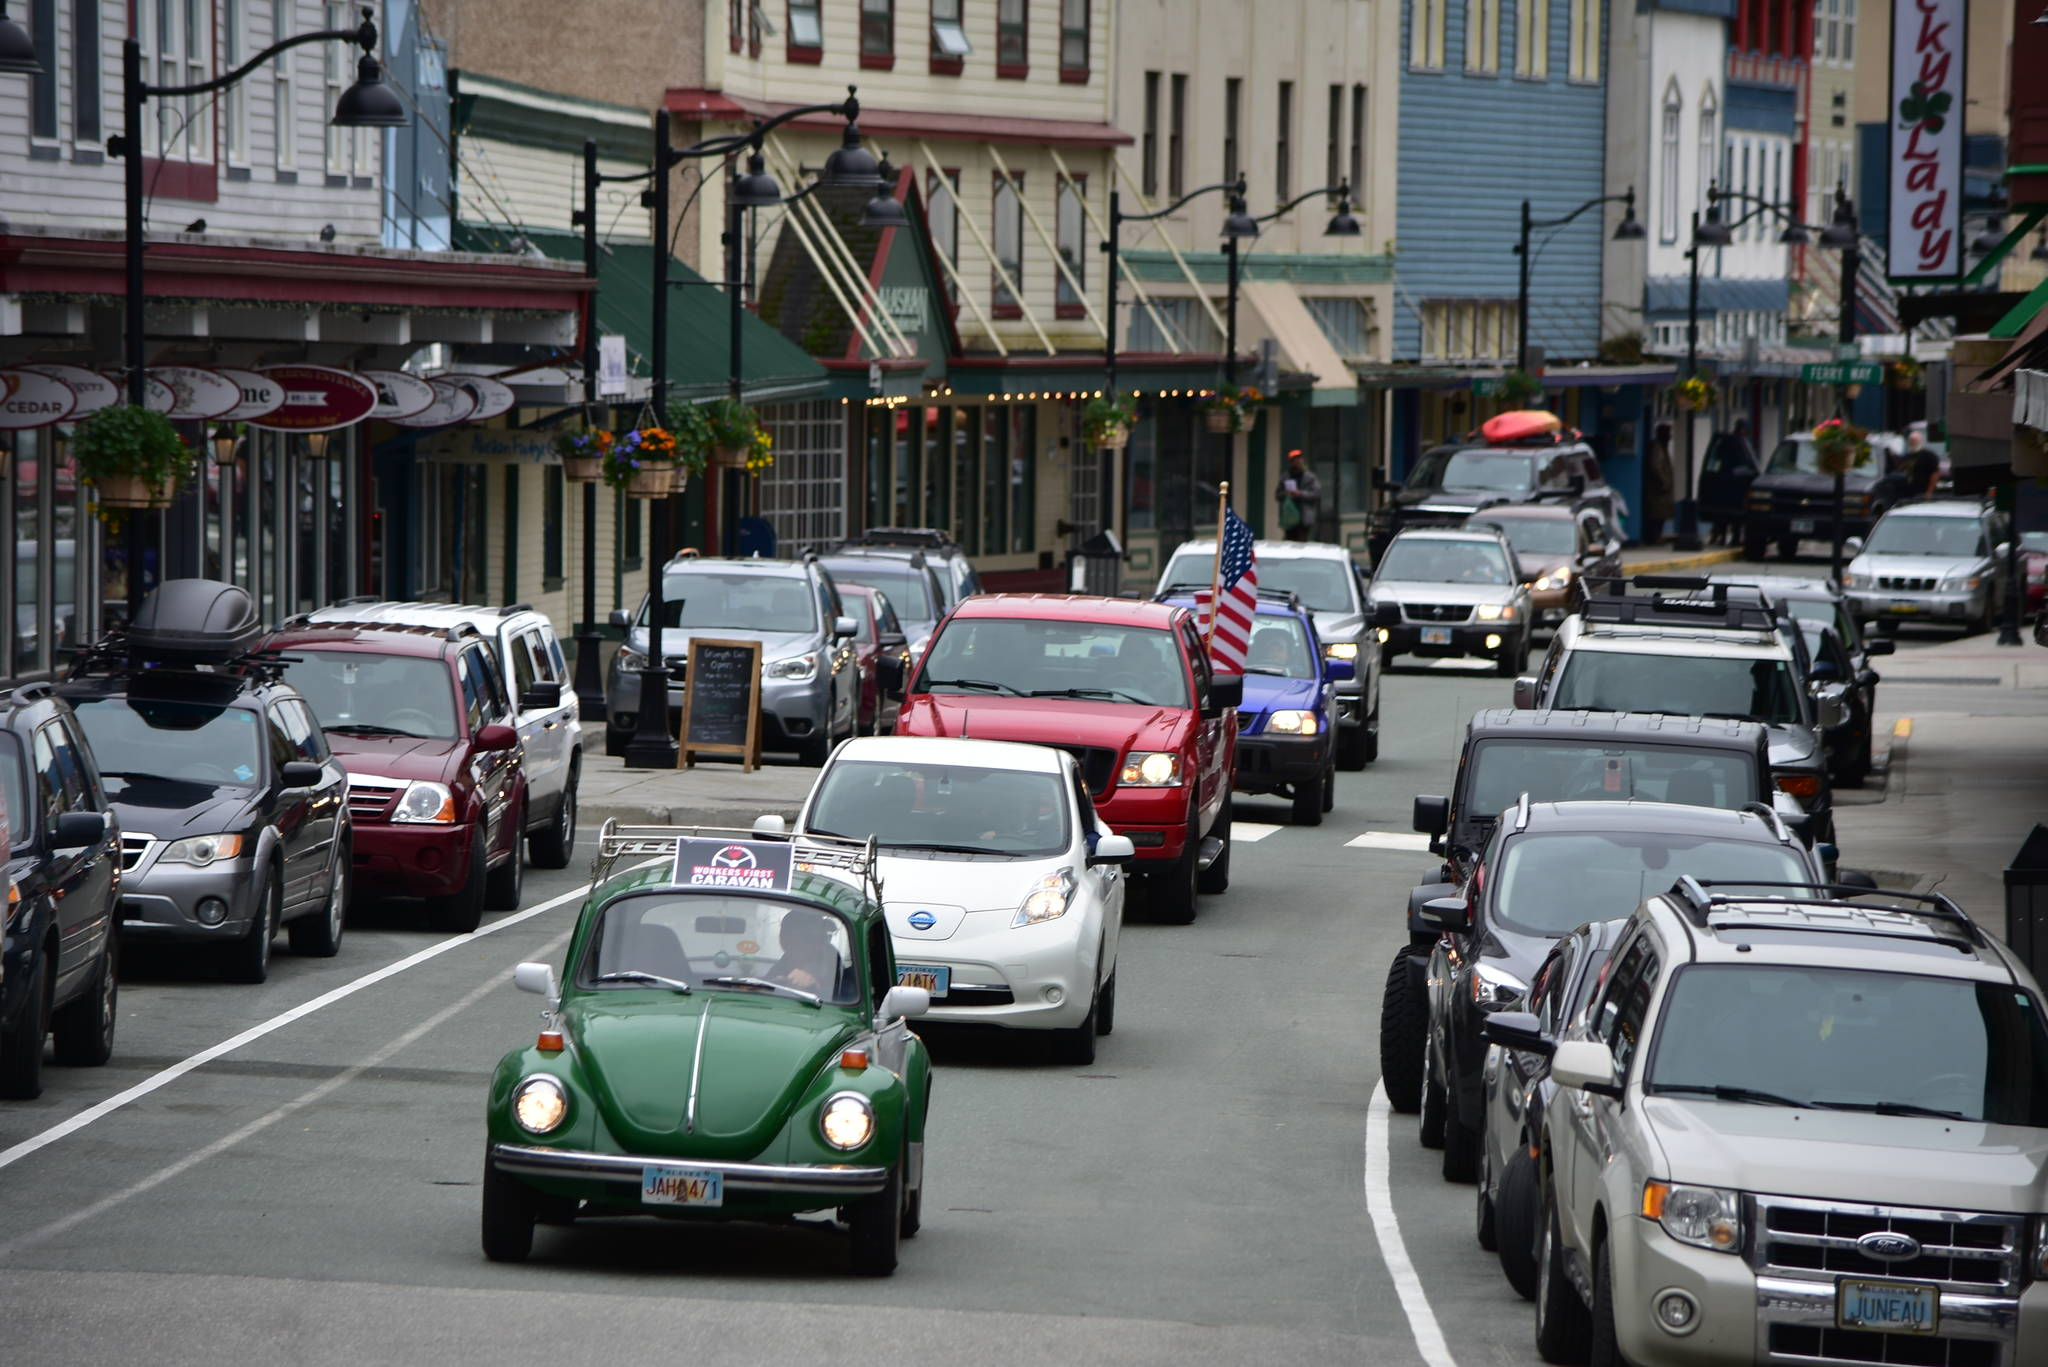 A caravan of union workers and their supporters drive through downtown Juneau on Wednesday, June 17, 2020, as part of a nation protest in support of workers during the COVID-19 pandemic. (Peter Segall | Juneau Empire)